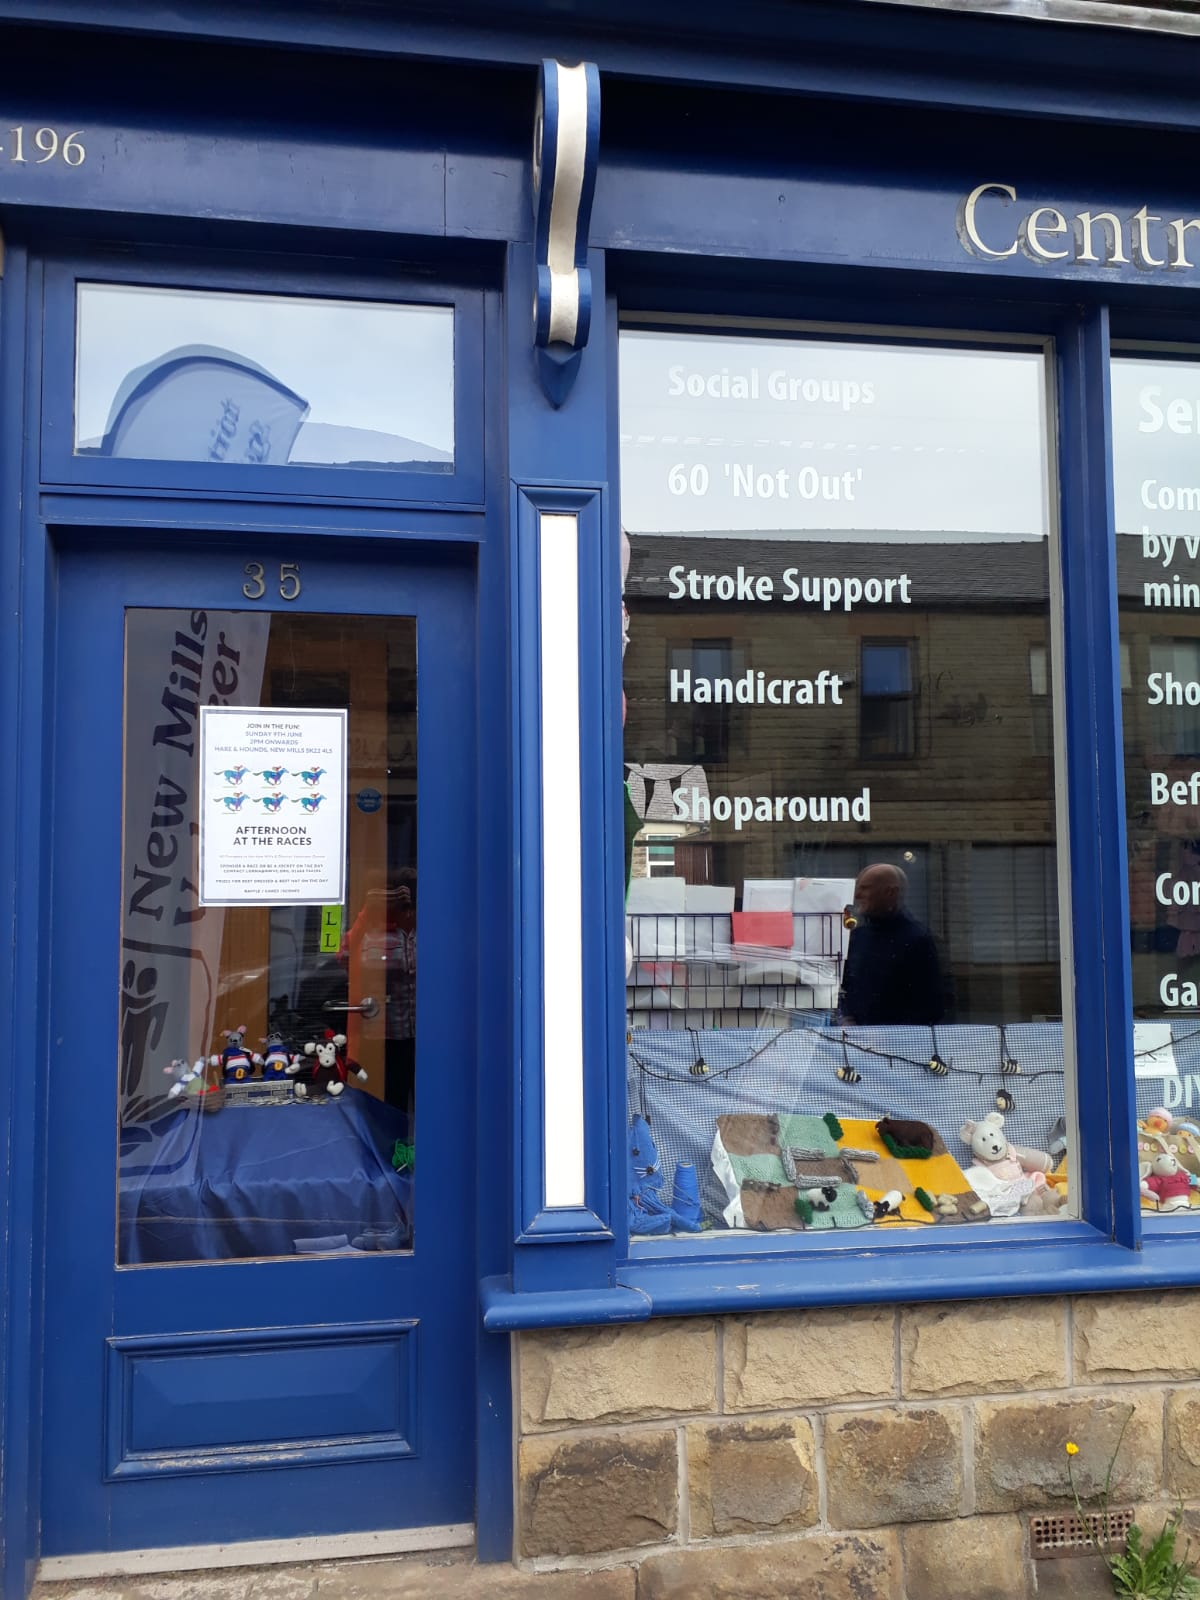 37. New Mills & District Volunteer Centre